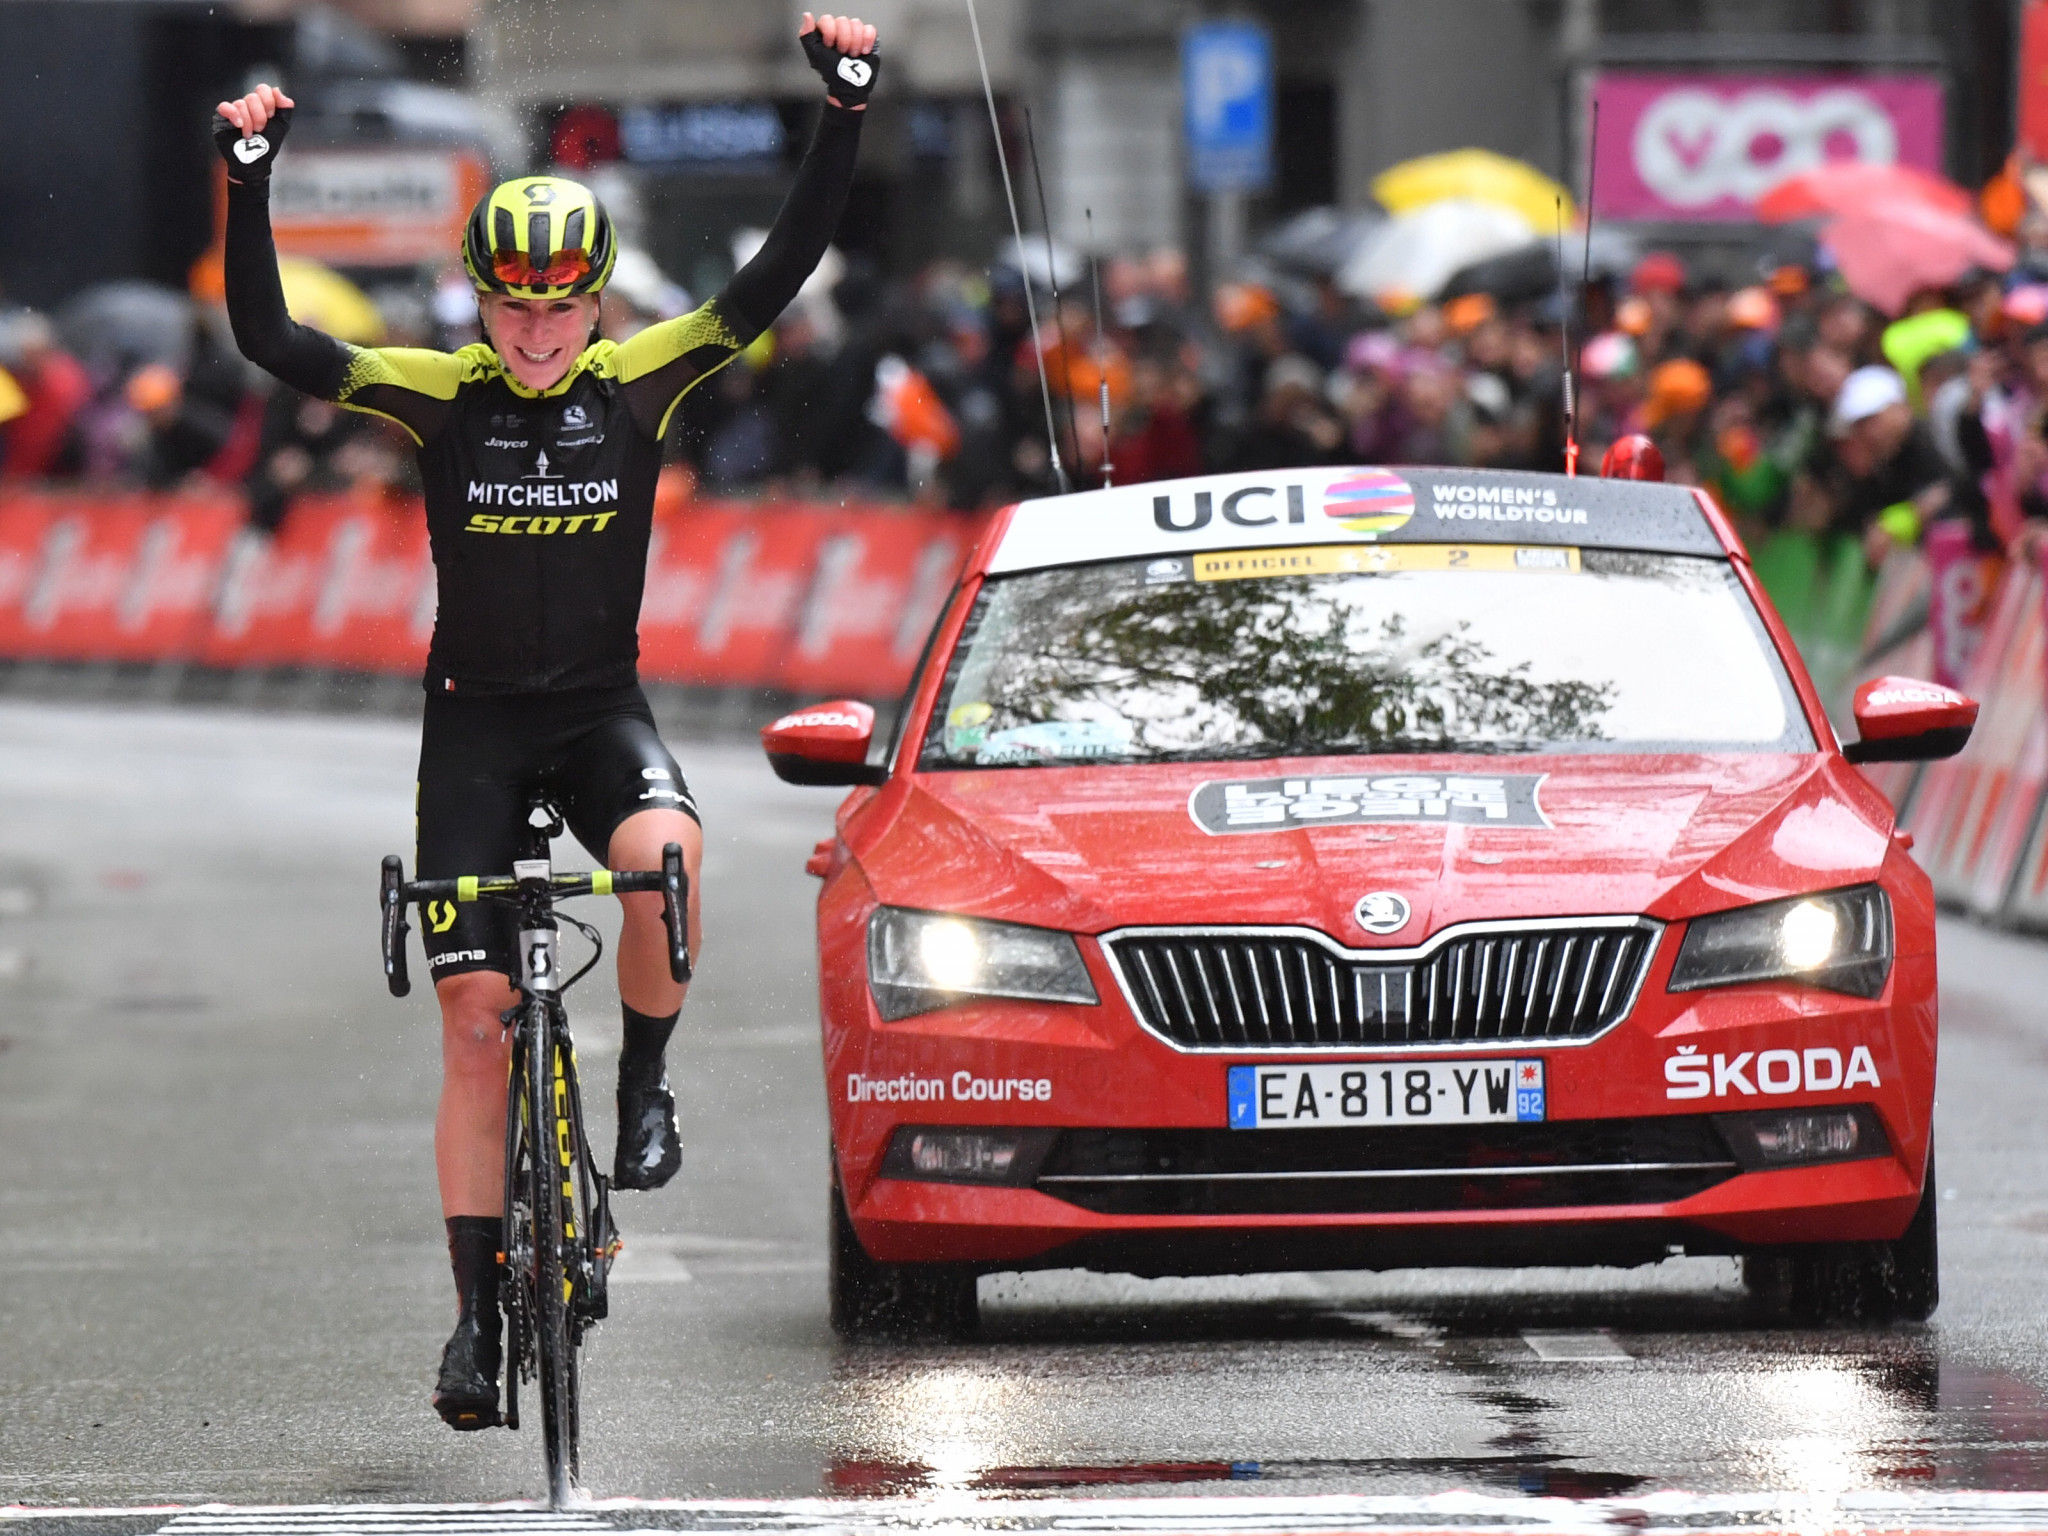 Annemiek van Vleuten comes home to win the women's title at the third Liège-Bastogne-Liège race to be staged ©Getty Images